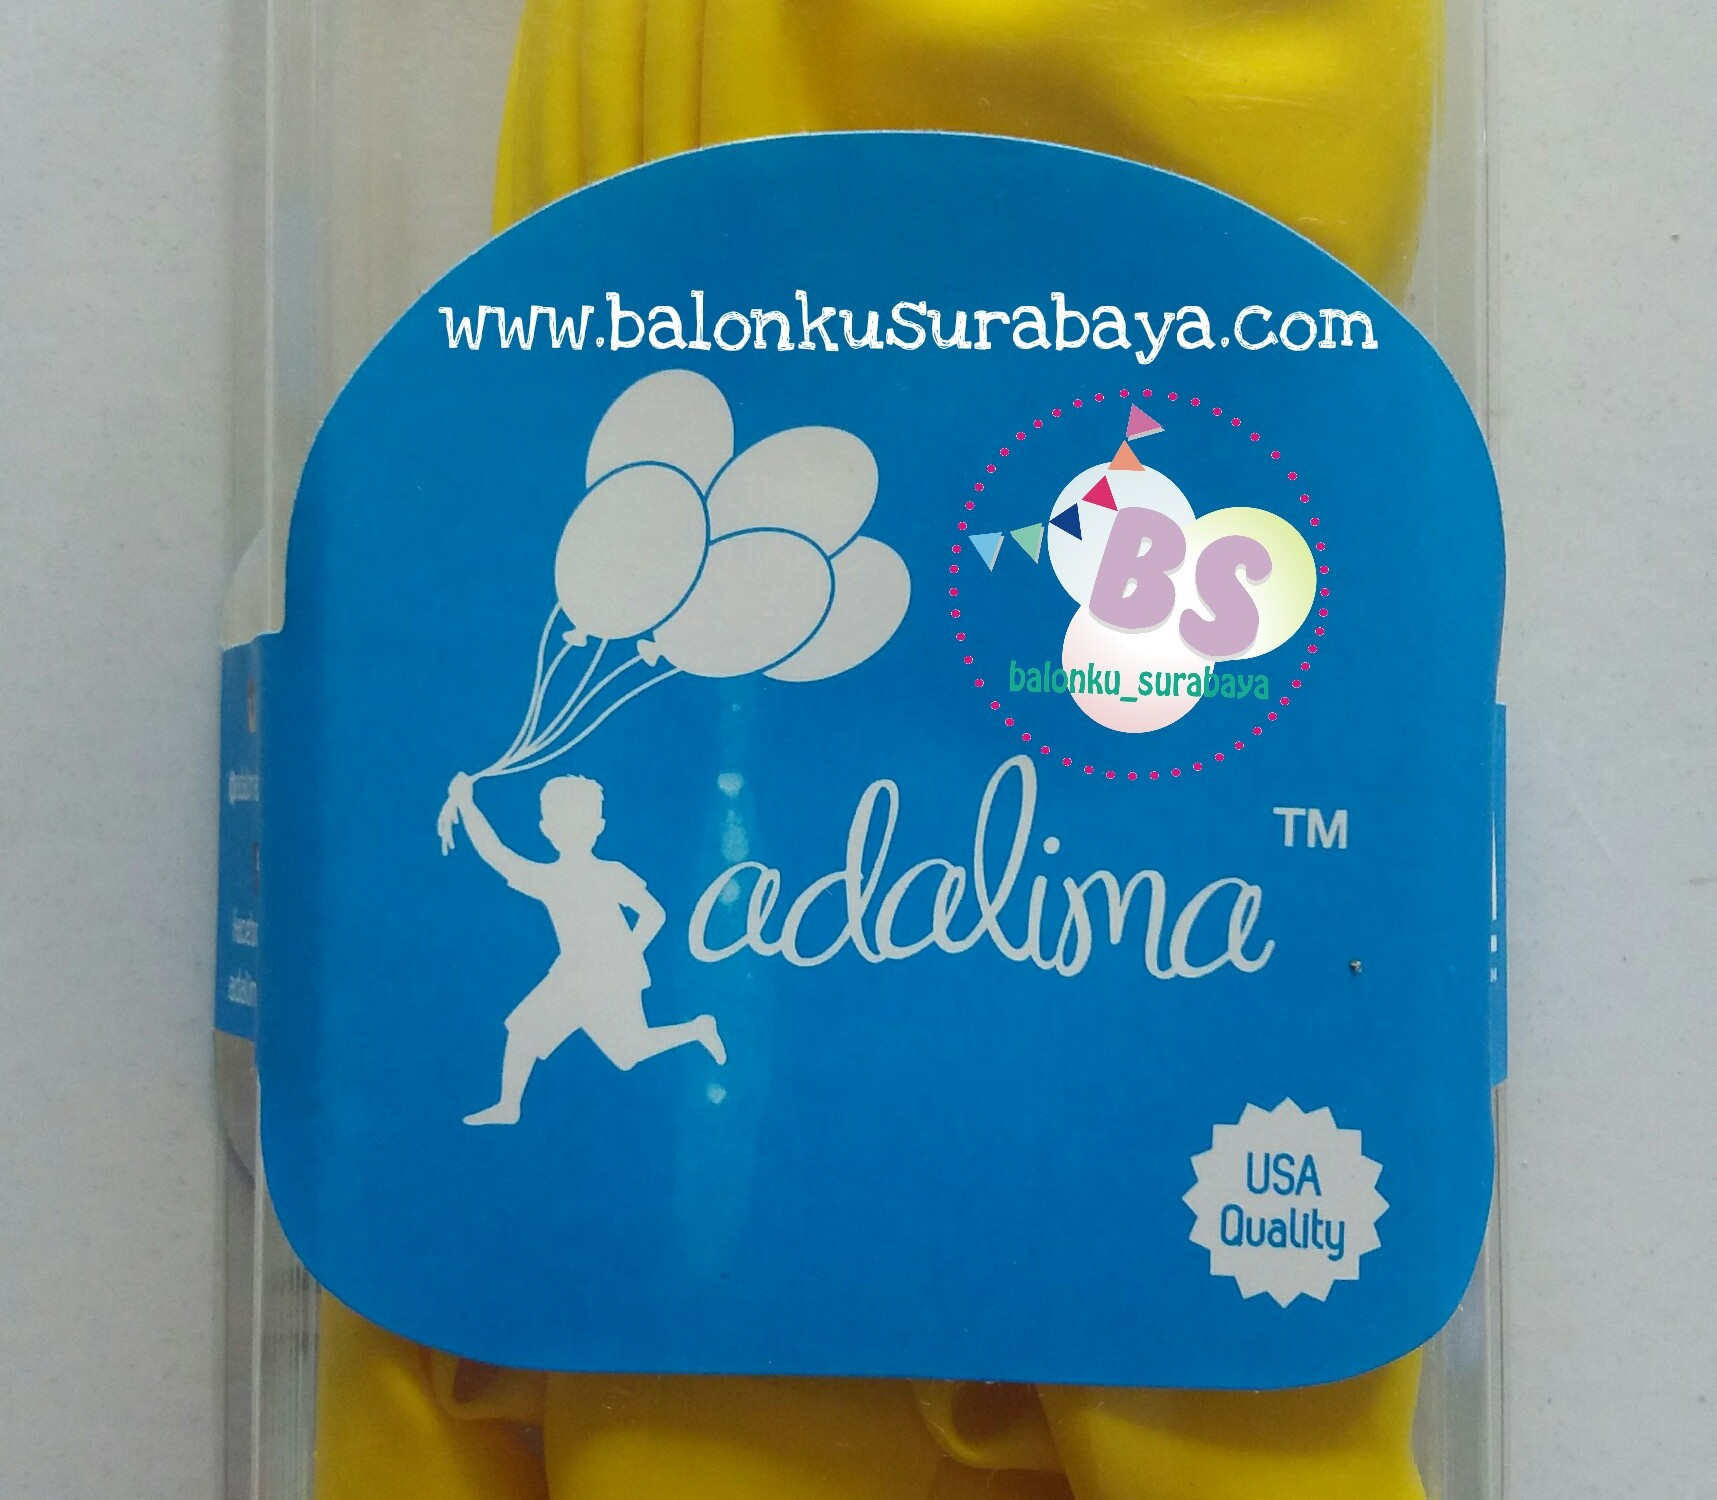 balon latex, balon warna kuning, balon kuning